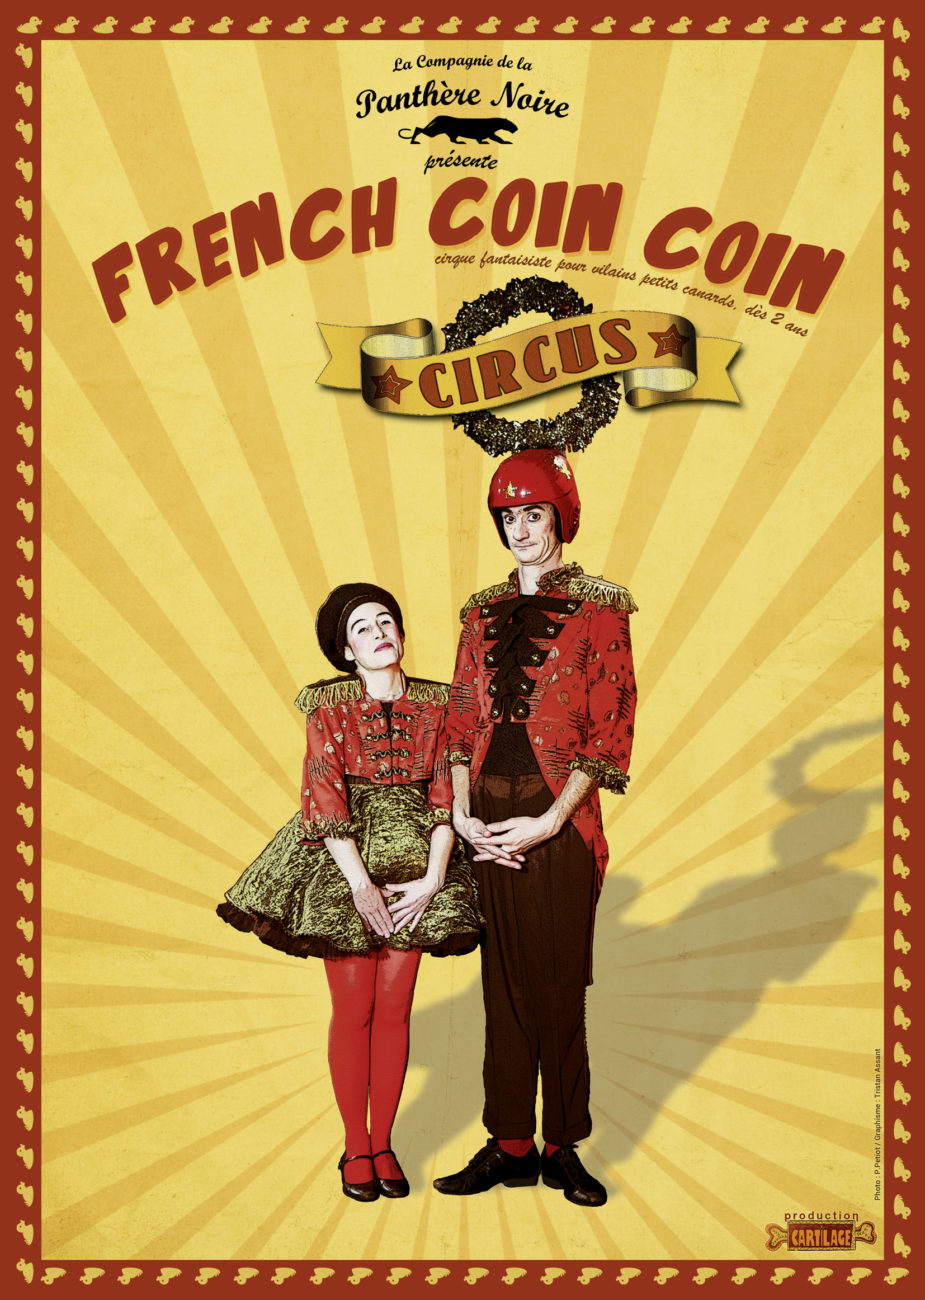 Spectacle familial «French Coin Coin Circus»